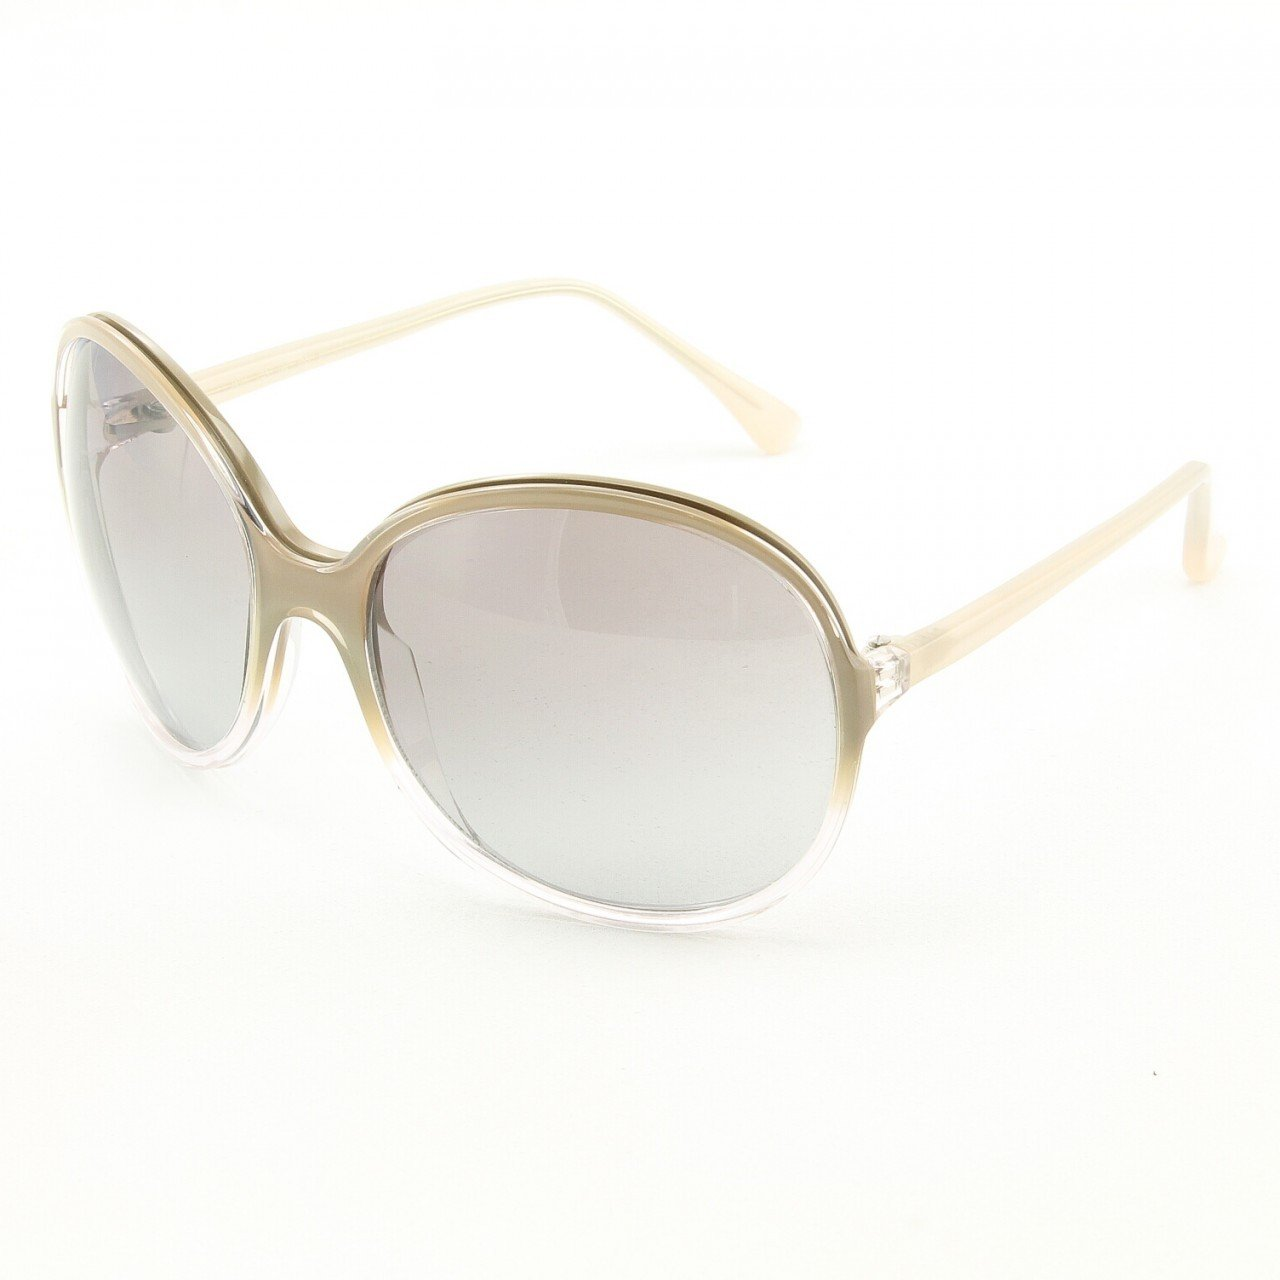 Marni MA165S Sunglasses Col. 10 Oversized Cream and Clear Frame with Gray Gradient Lenses